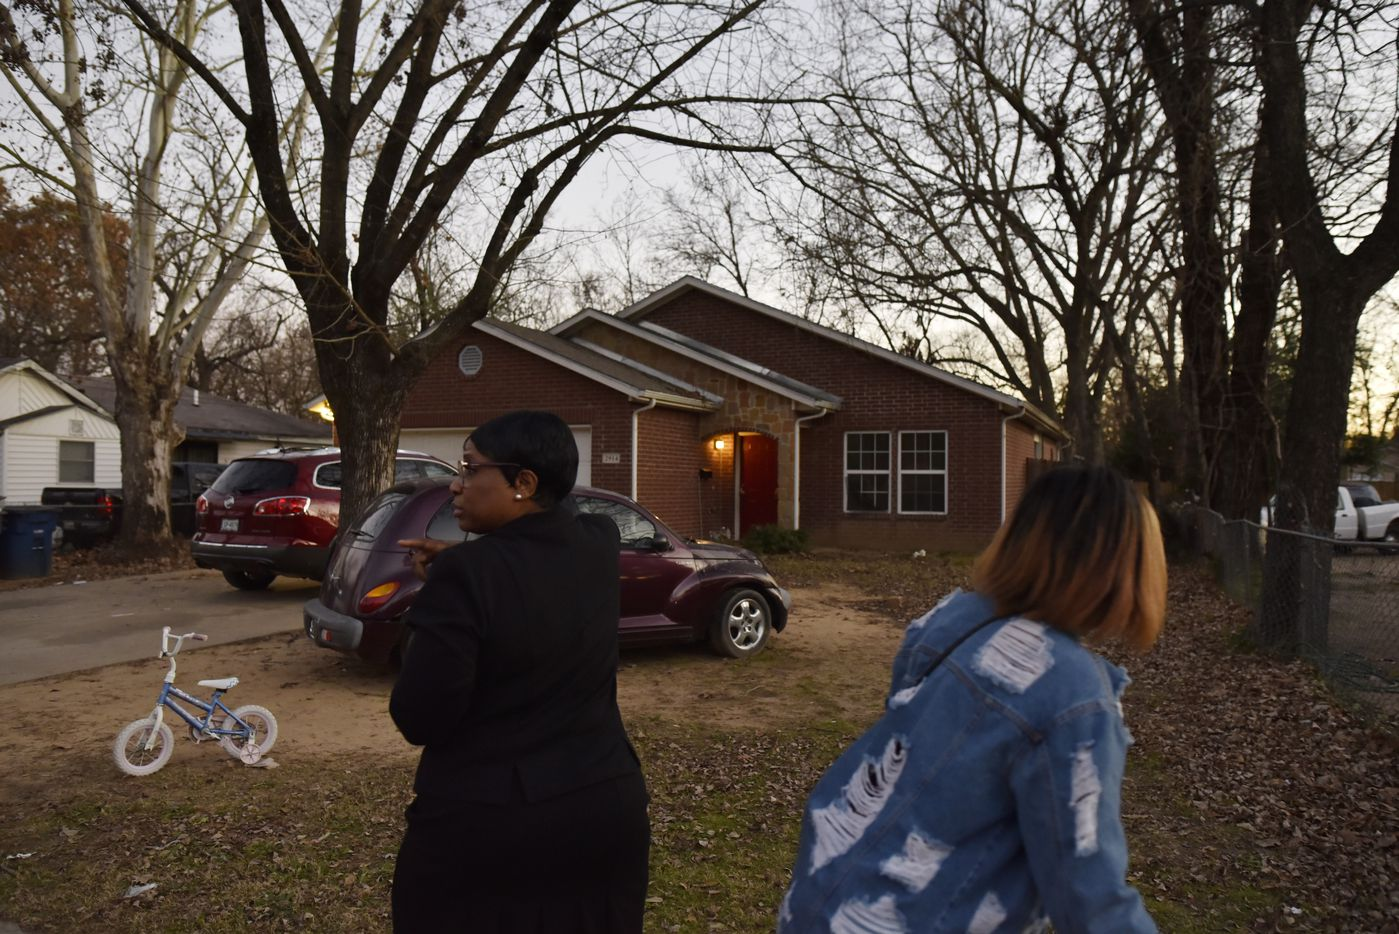 Ella Mae Beasley, 57, left, and her niece   walked by the home where Rory Norman and his uncle were shot inside their home on Valentine Street. Beasley, who has lived in the neighborhood all her life, was sad about the death of the boy.